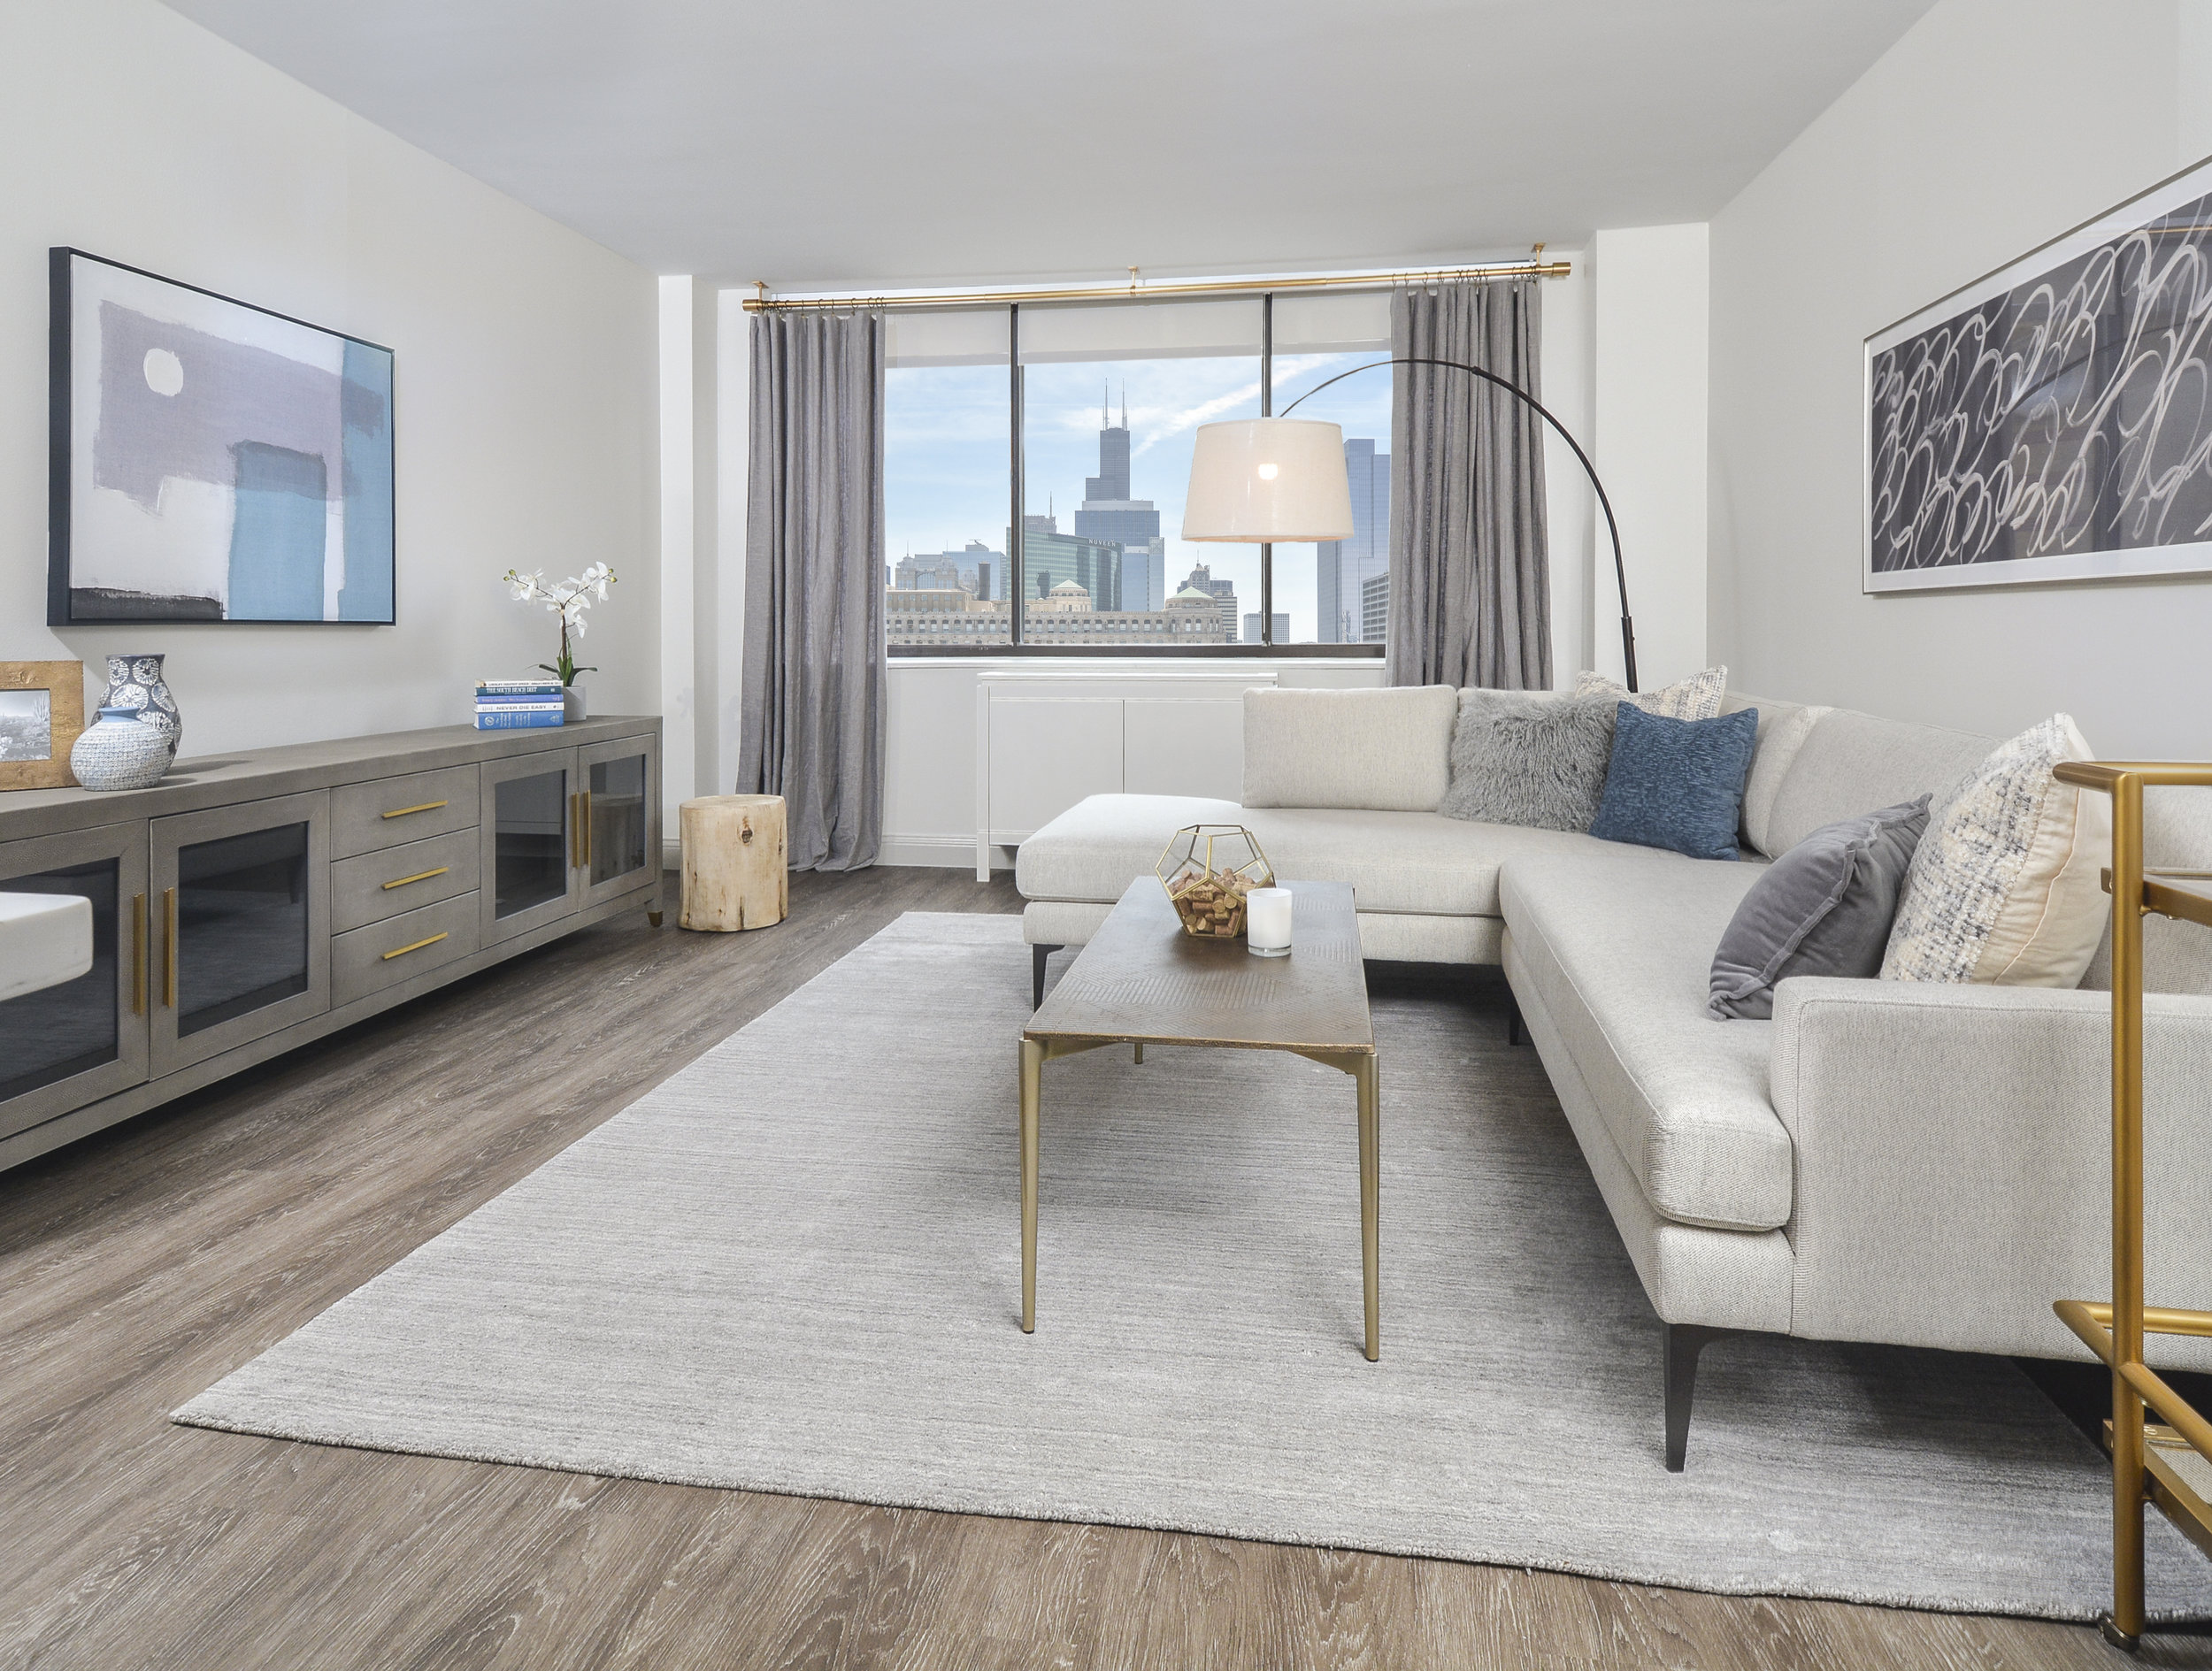 Brass finishes and pops of blue liven up the living room and pairs marvelously with breathtaking Chicago skyline.